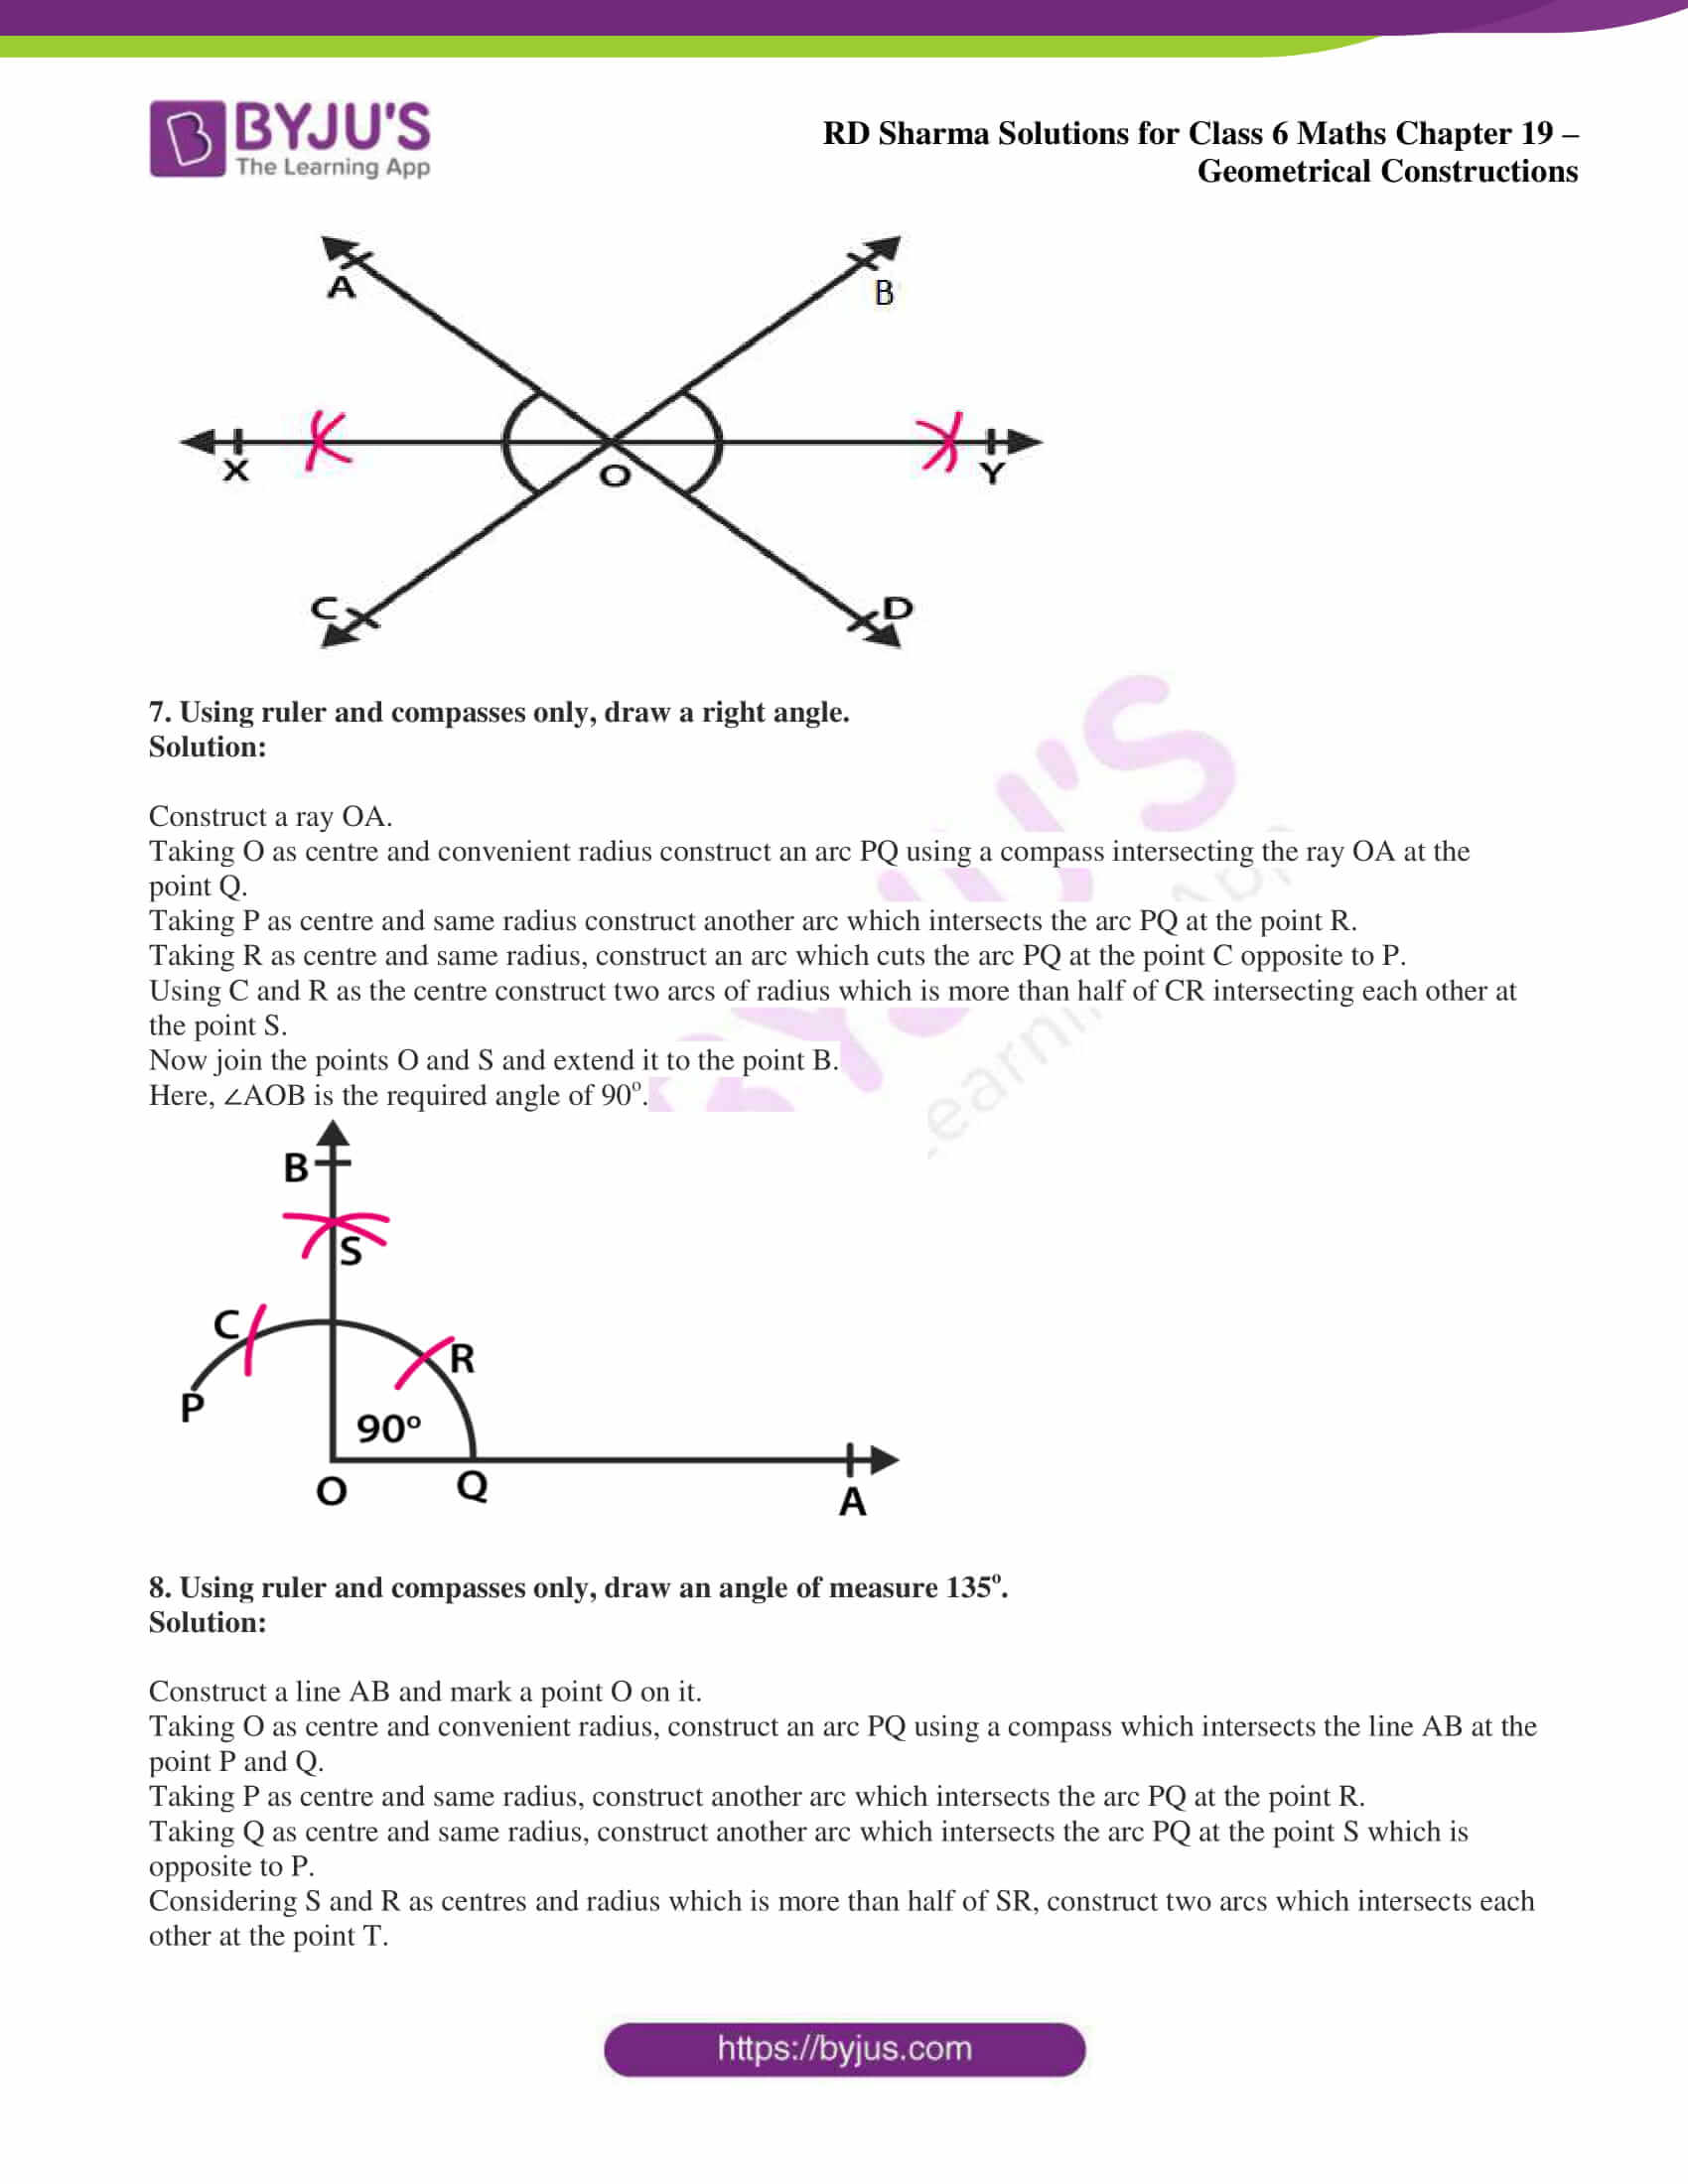 rd sharma solutions nov2020 class 6 maths chapter 19 exercise 5 4